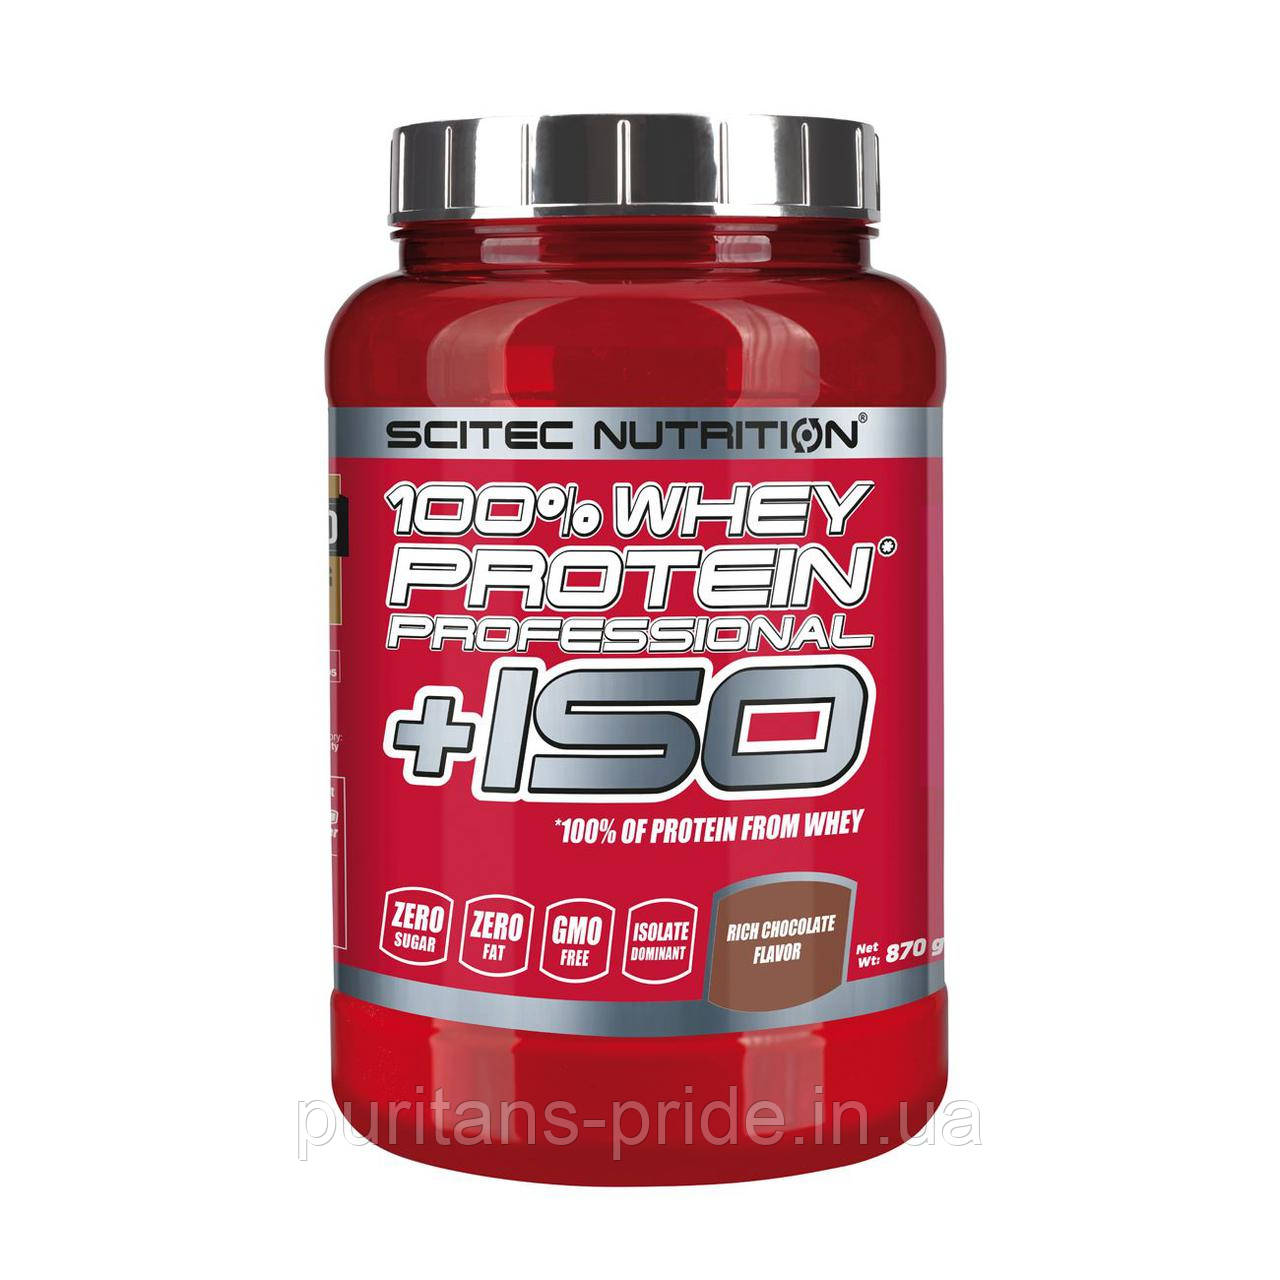 Scitec Nutrition 100% Whey Protein Professional +ISO (870 g)